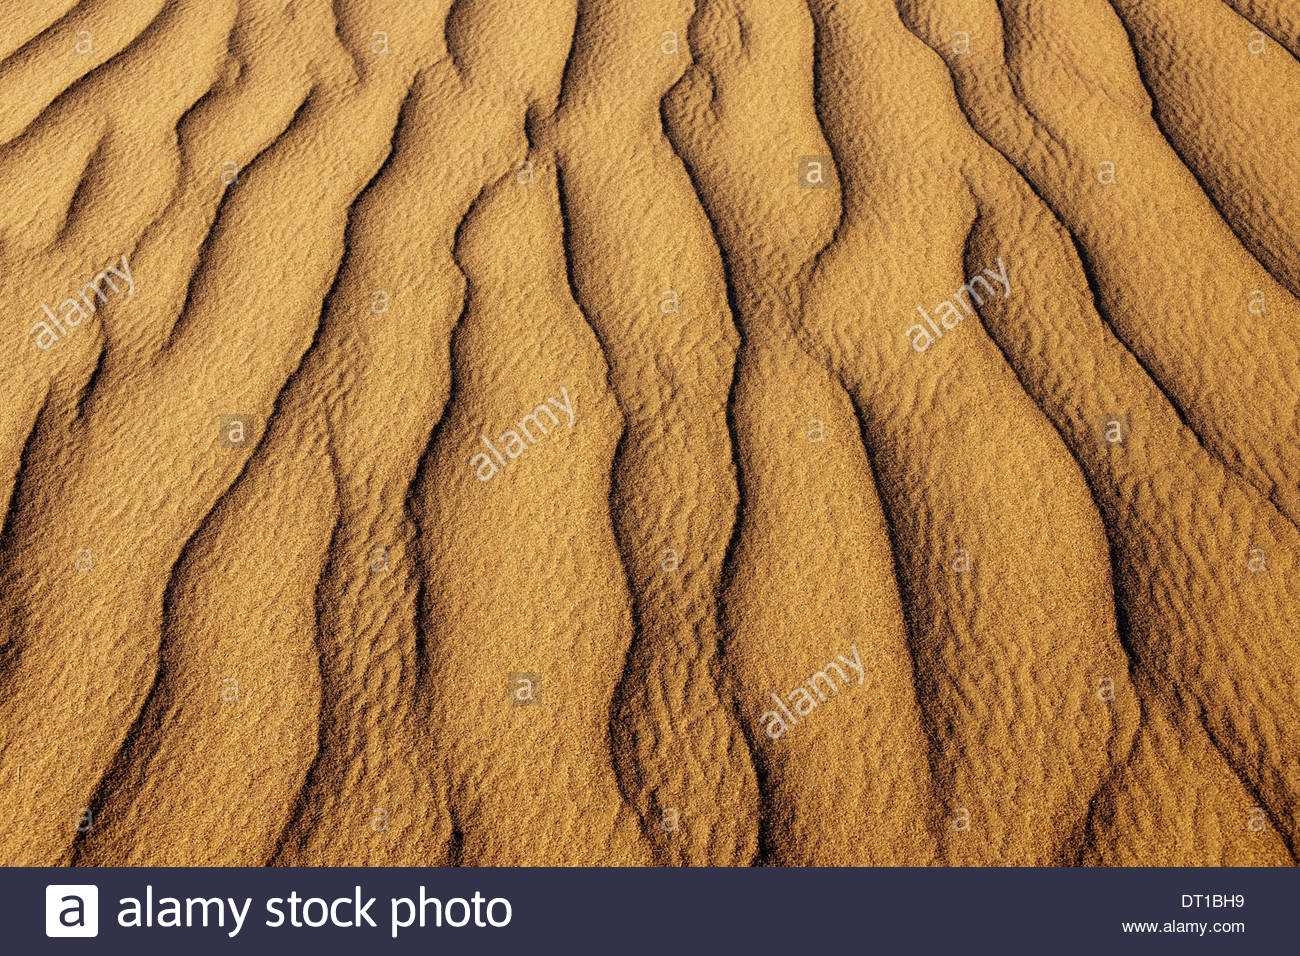 Namib-Naukluft National Park Namibie les habitudes des dunes de sable Namib-Naukluft National Park Photo Stock